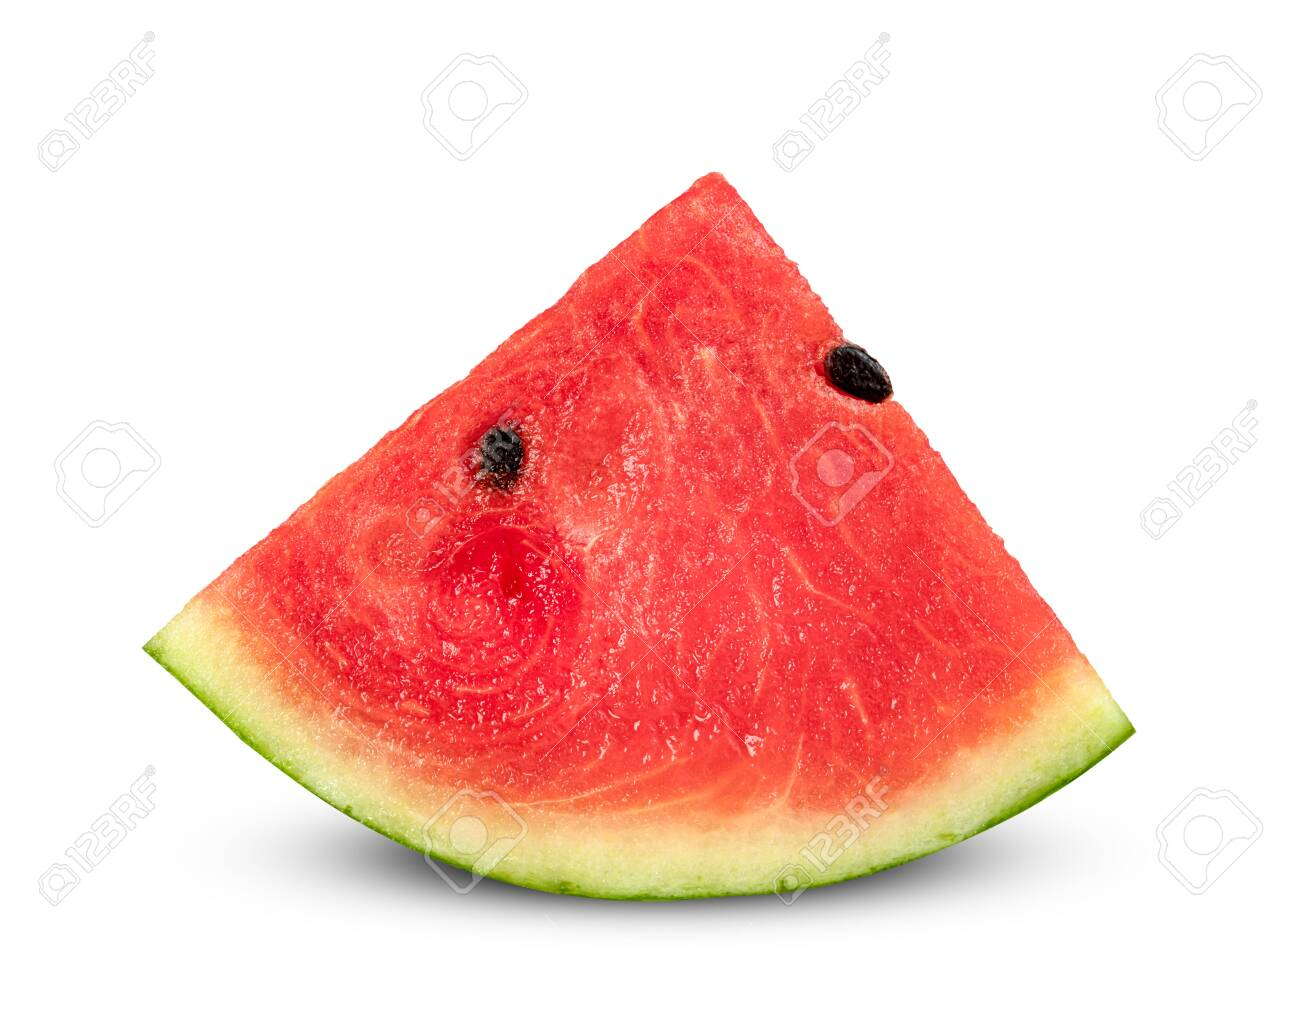 watermelon isolated on white background ,include clipping path - 147038913